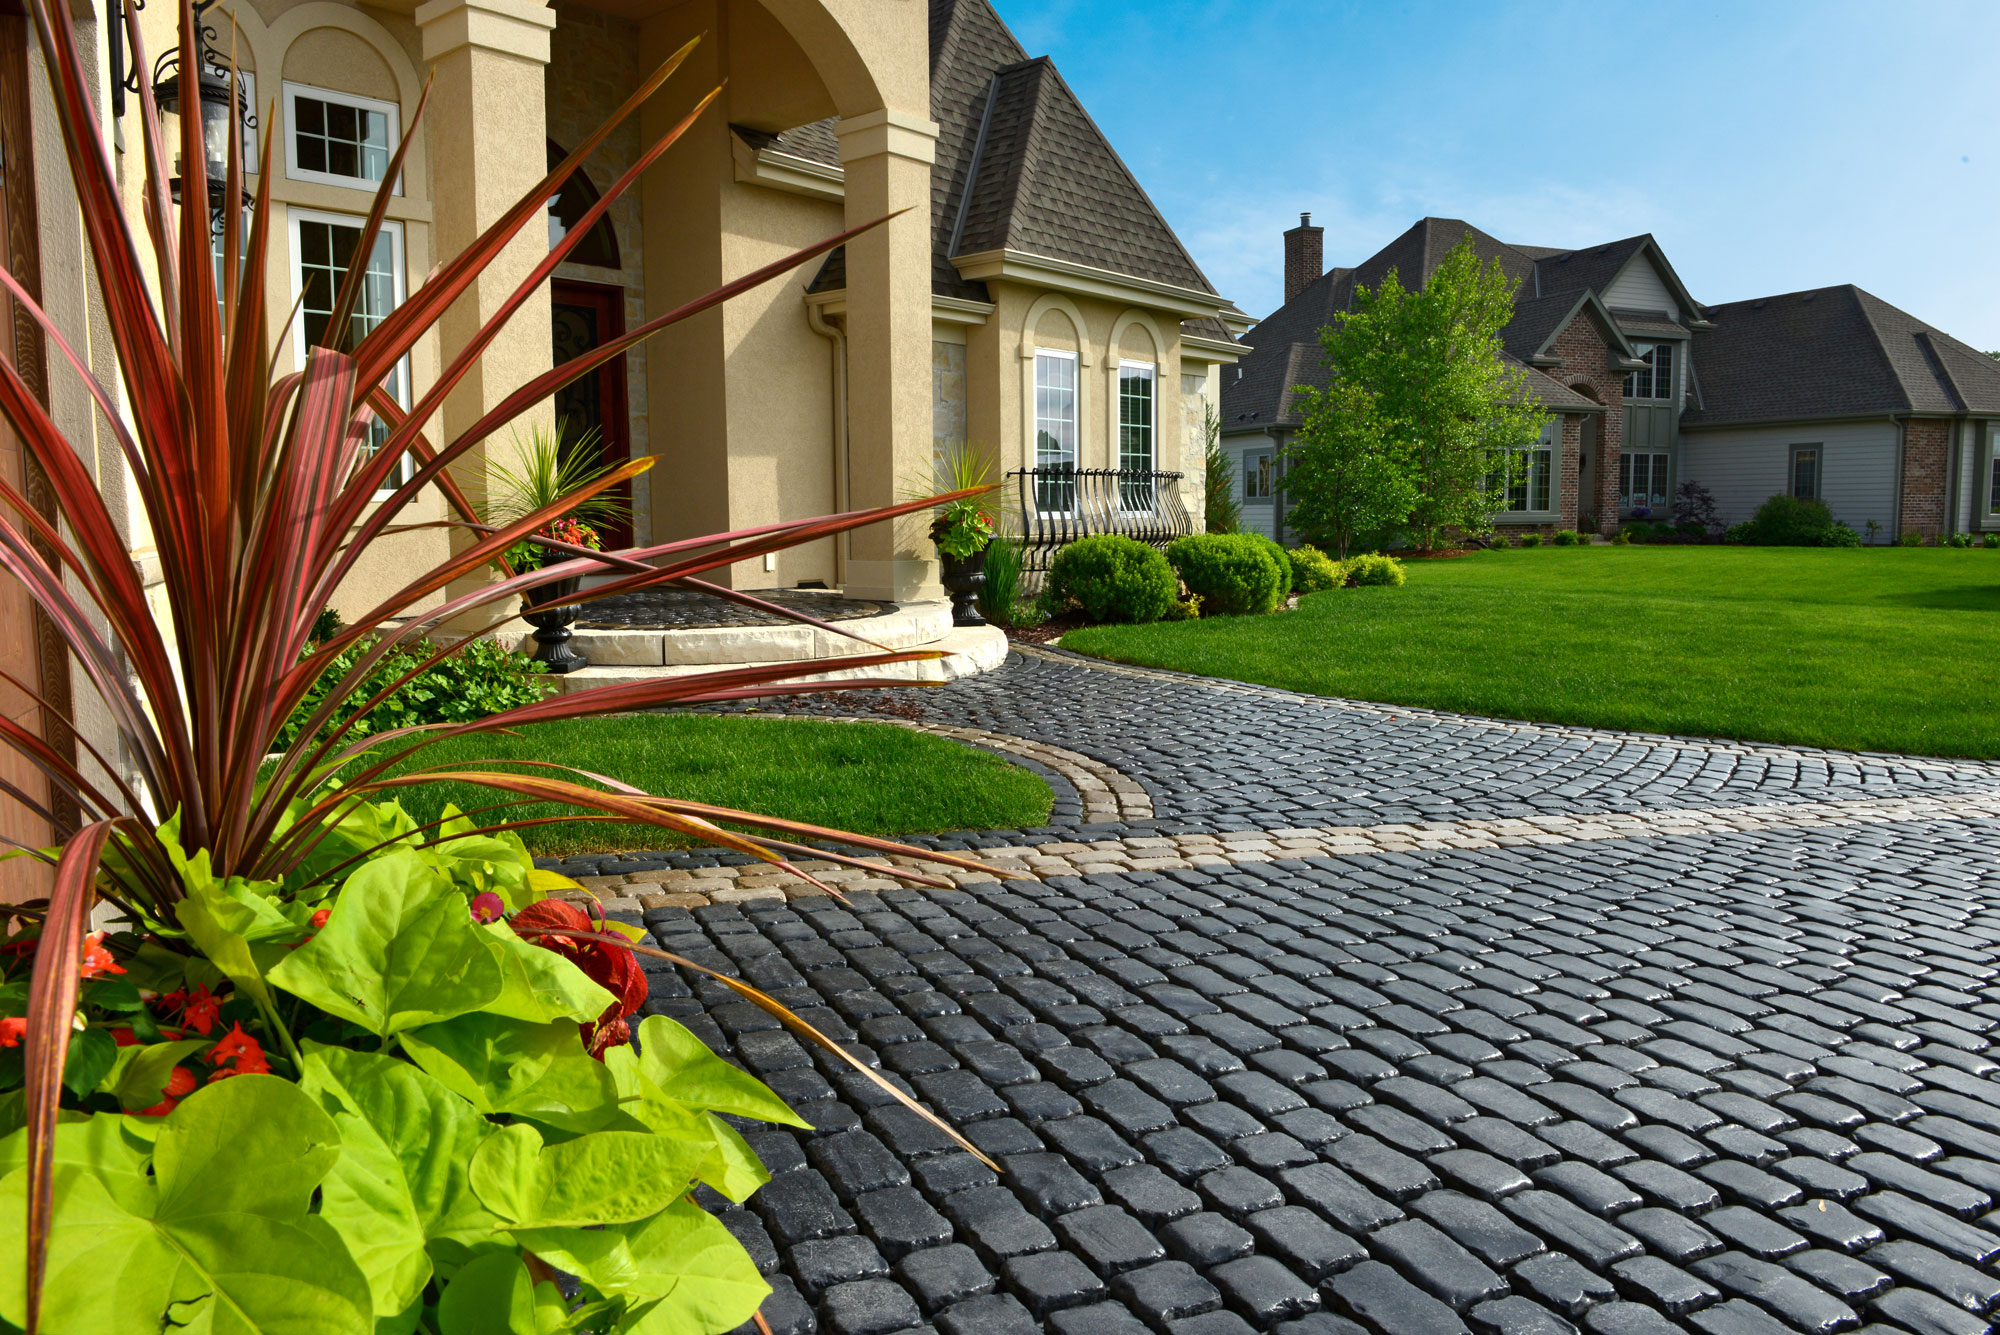 Interlocking Driveway Pavers For Creating A Warm Welcome